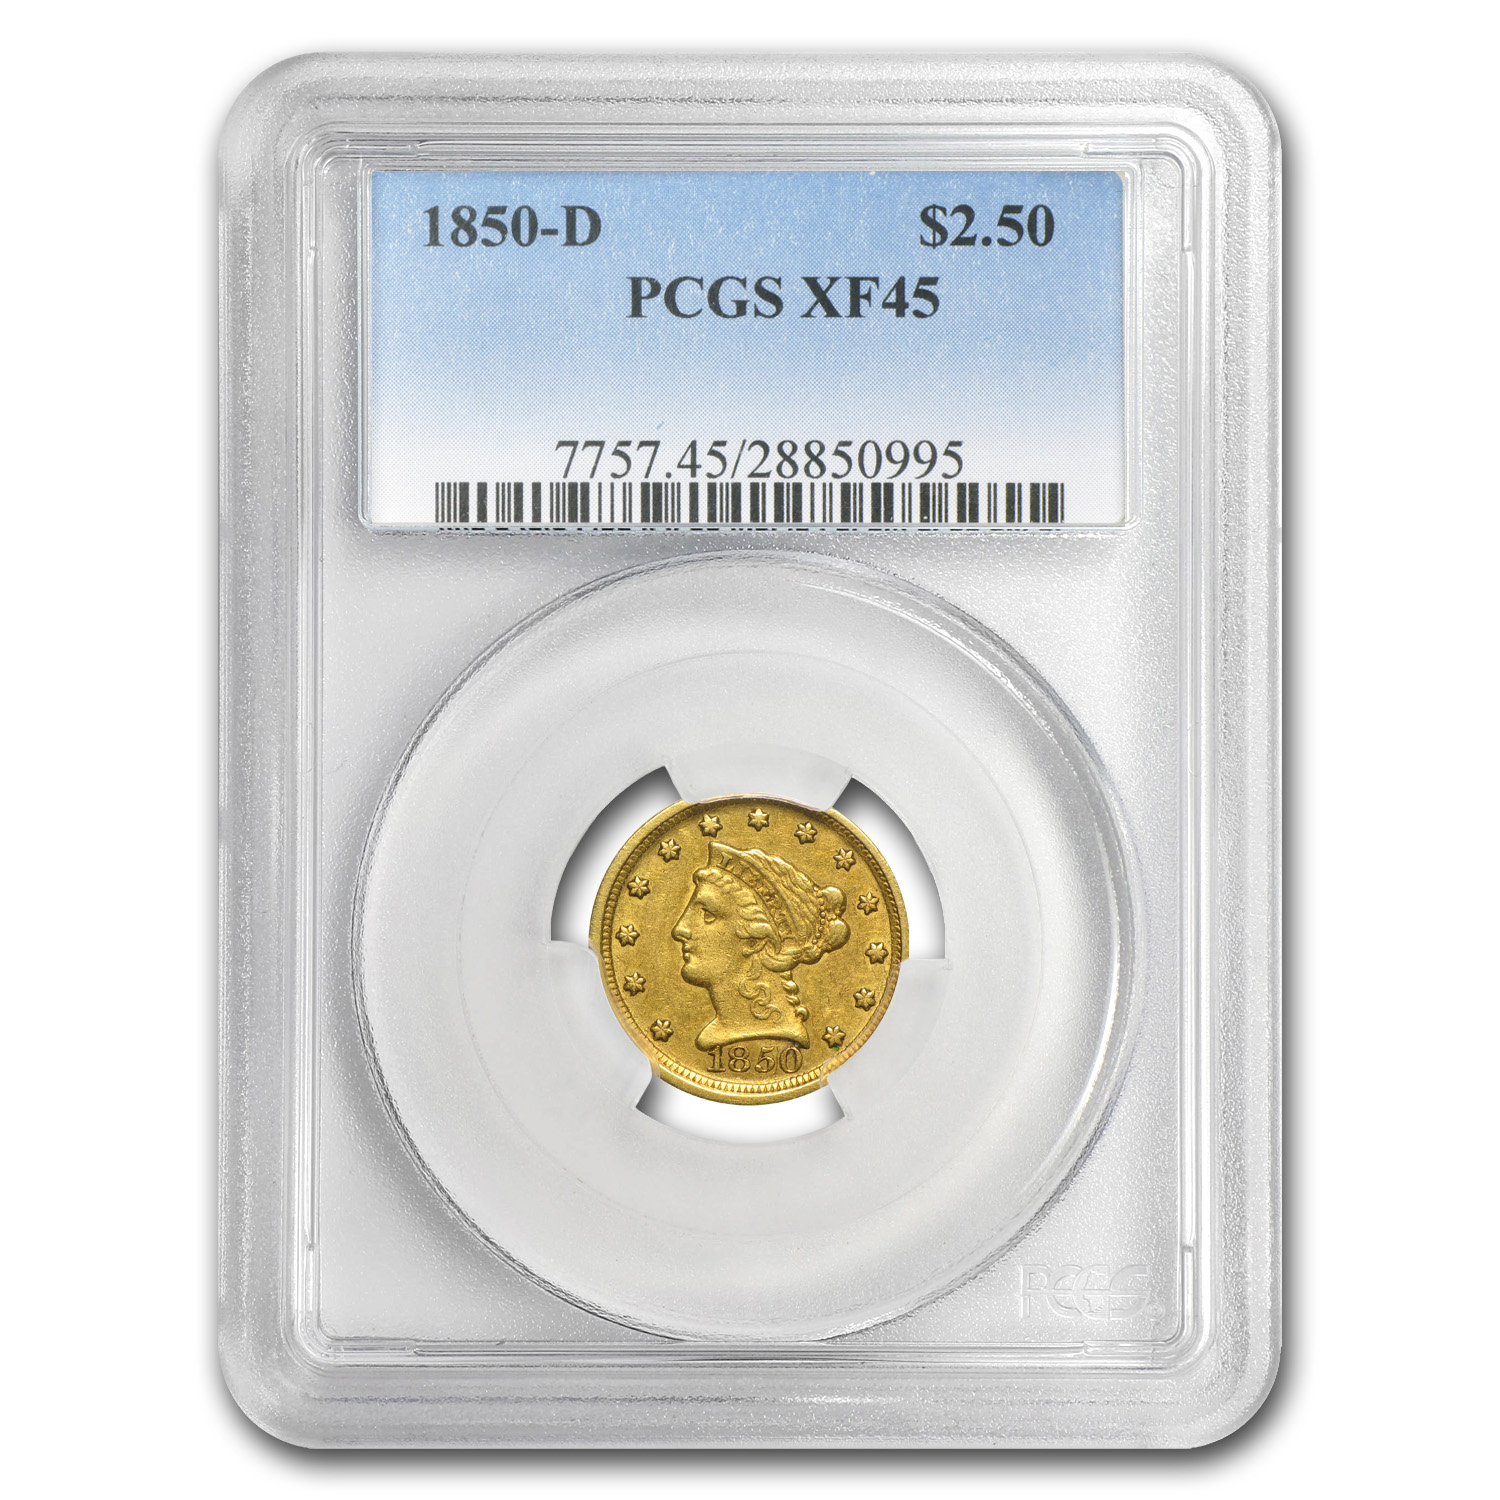 1850-D $2.50 Liberty Gold Quarter Eagle - XF-45 PCGS